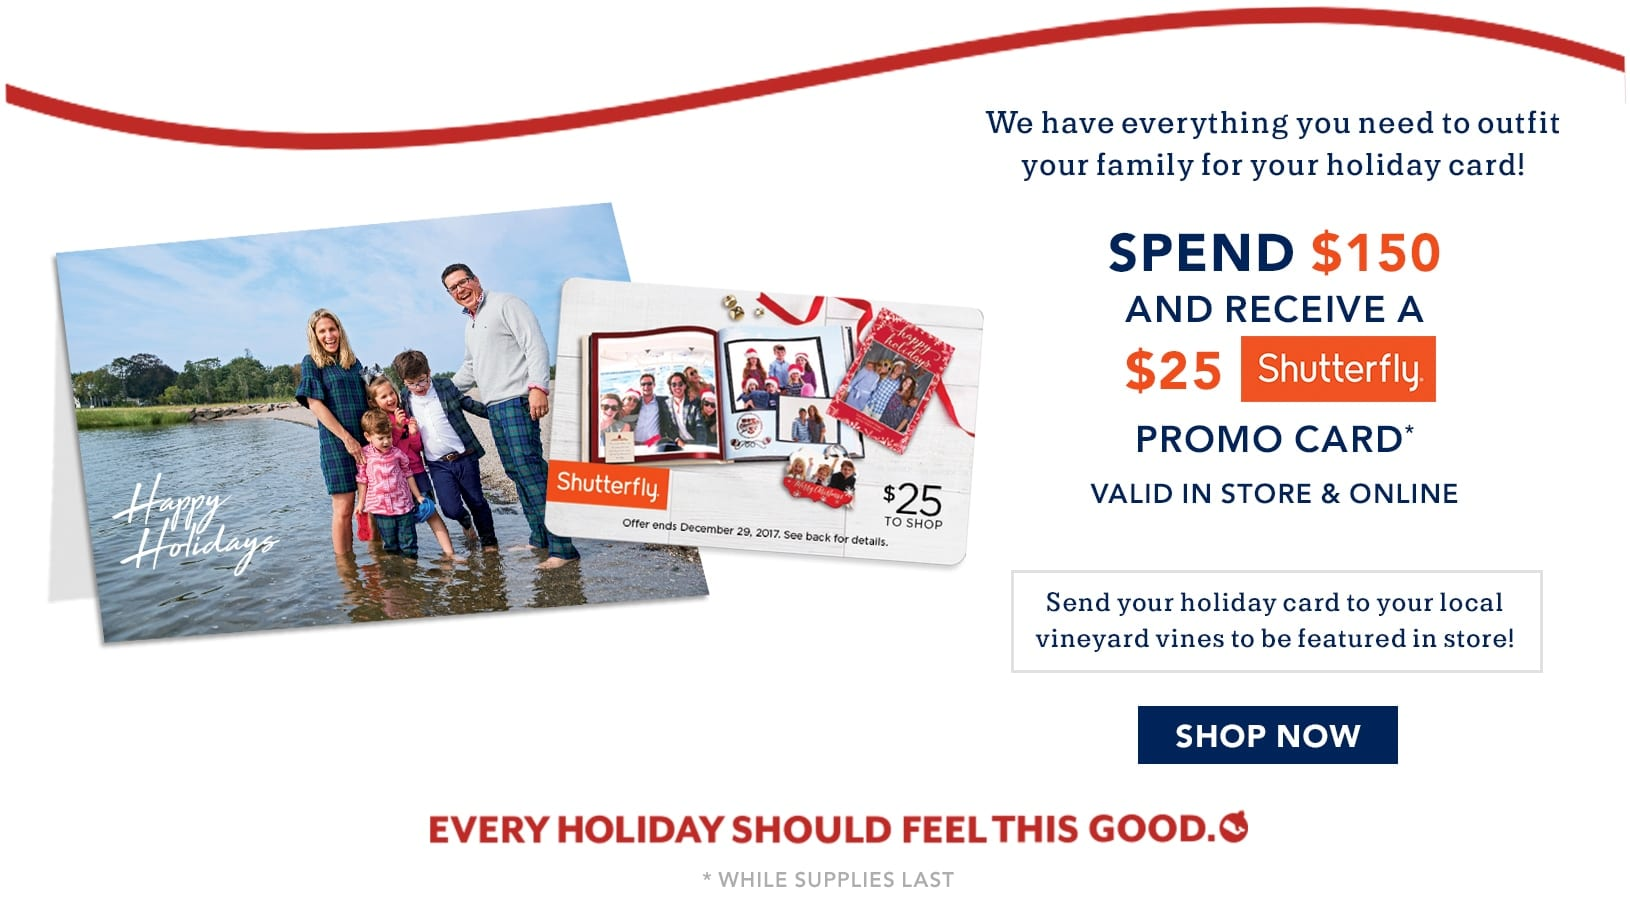 We have everything you need to outfit your family for your holiday card! Spend $150 and recieve a $25 Shutterfly promo card valid in store and online. Send your holiday card to your local vineyard vines to be feature in store! Shop new arrivals now. Every Holiday Should Feel This Good. Valid while supplies last.